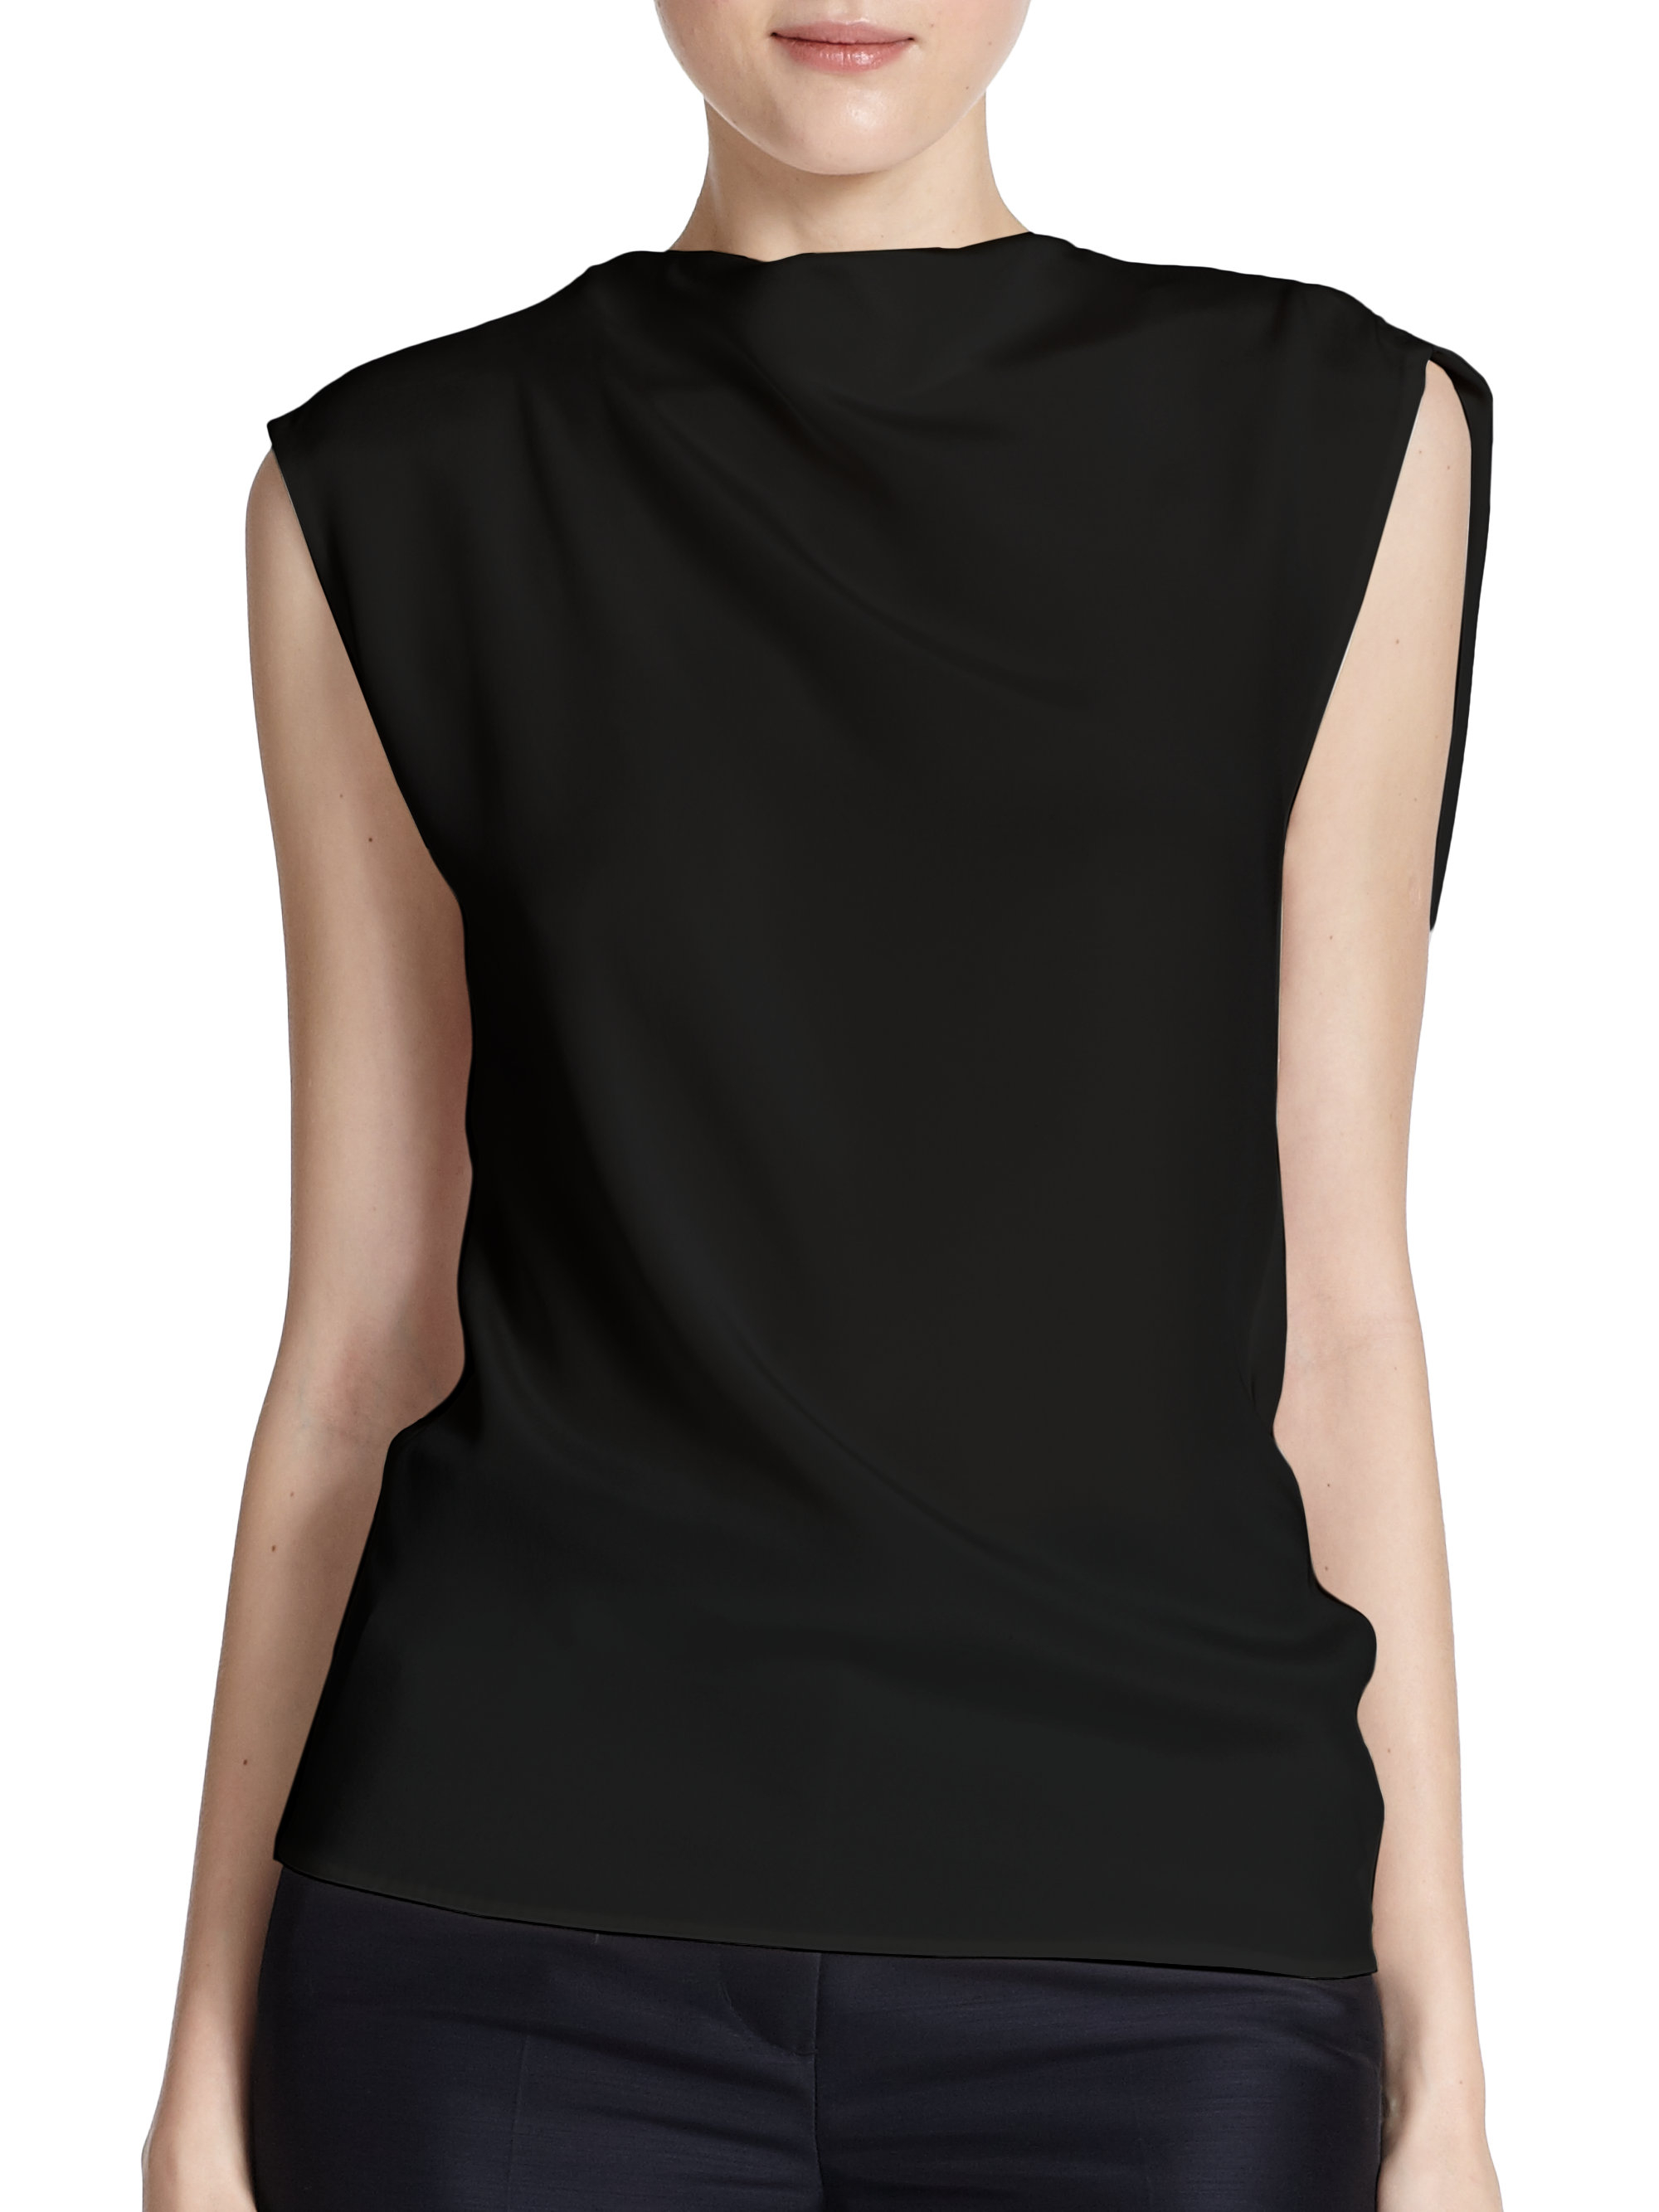 hardware c sleeveless malachite drapes calvin effortlessly p klein ljgpfrx bar detail pleated draped with tshirts top